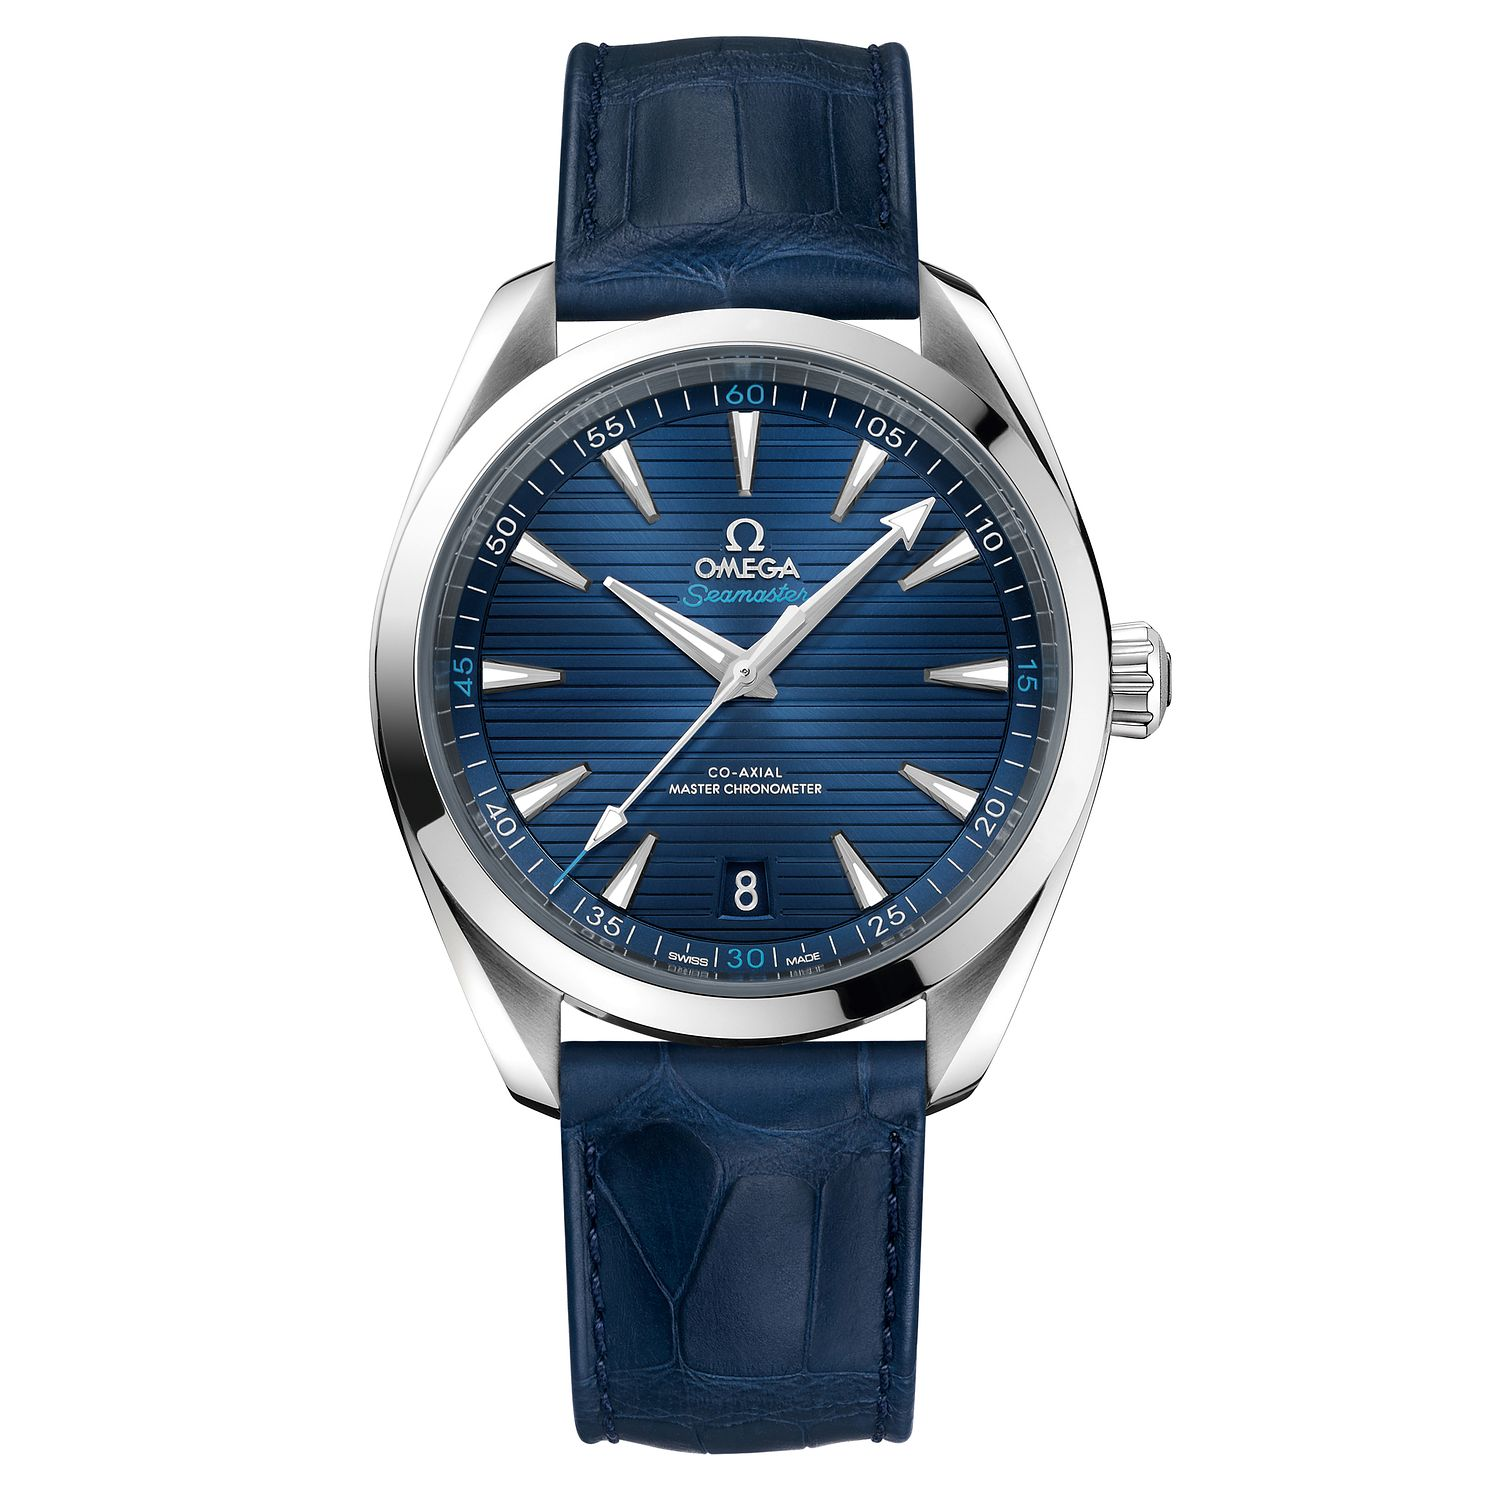 Omega Seamaster Aqua Terra Men's Blue Leather Strap Watch - Product number 6939945